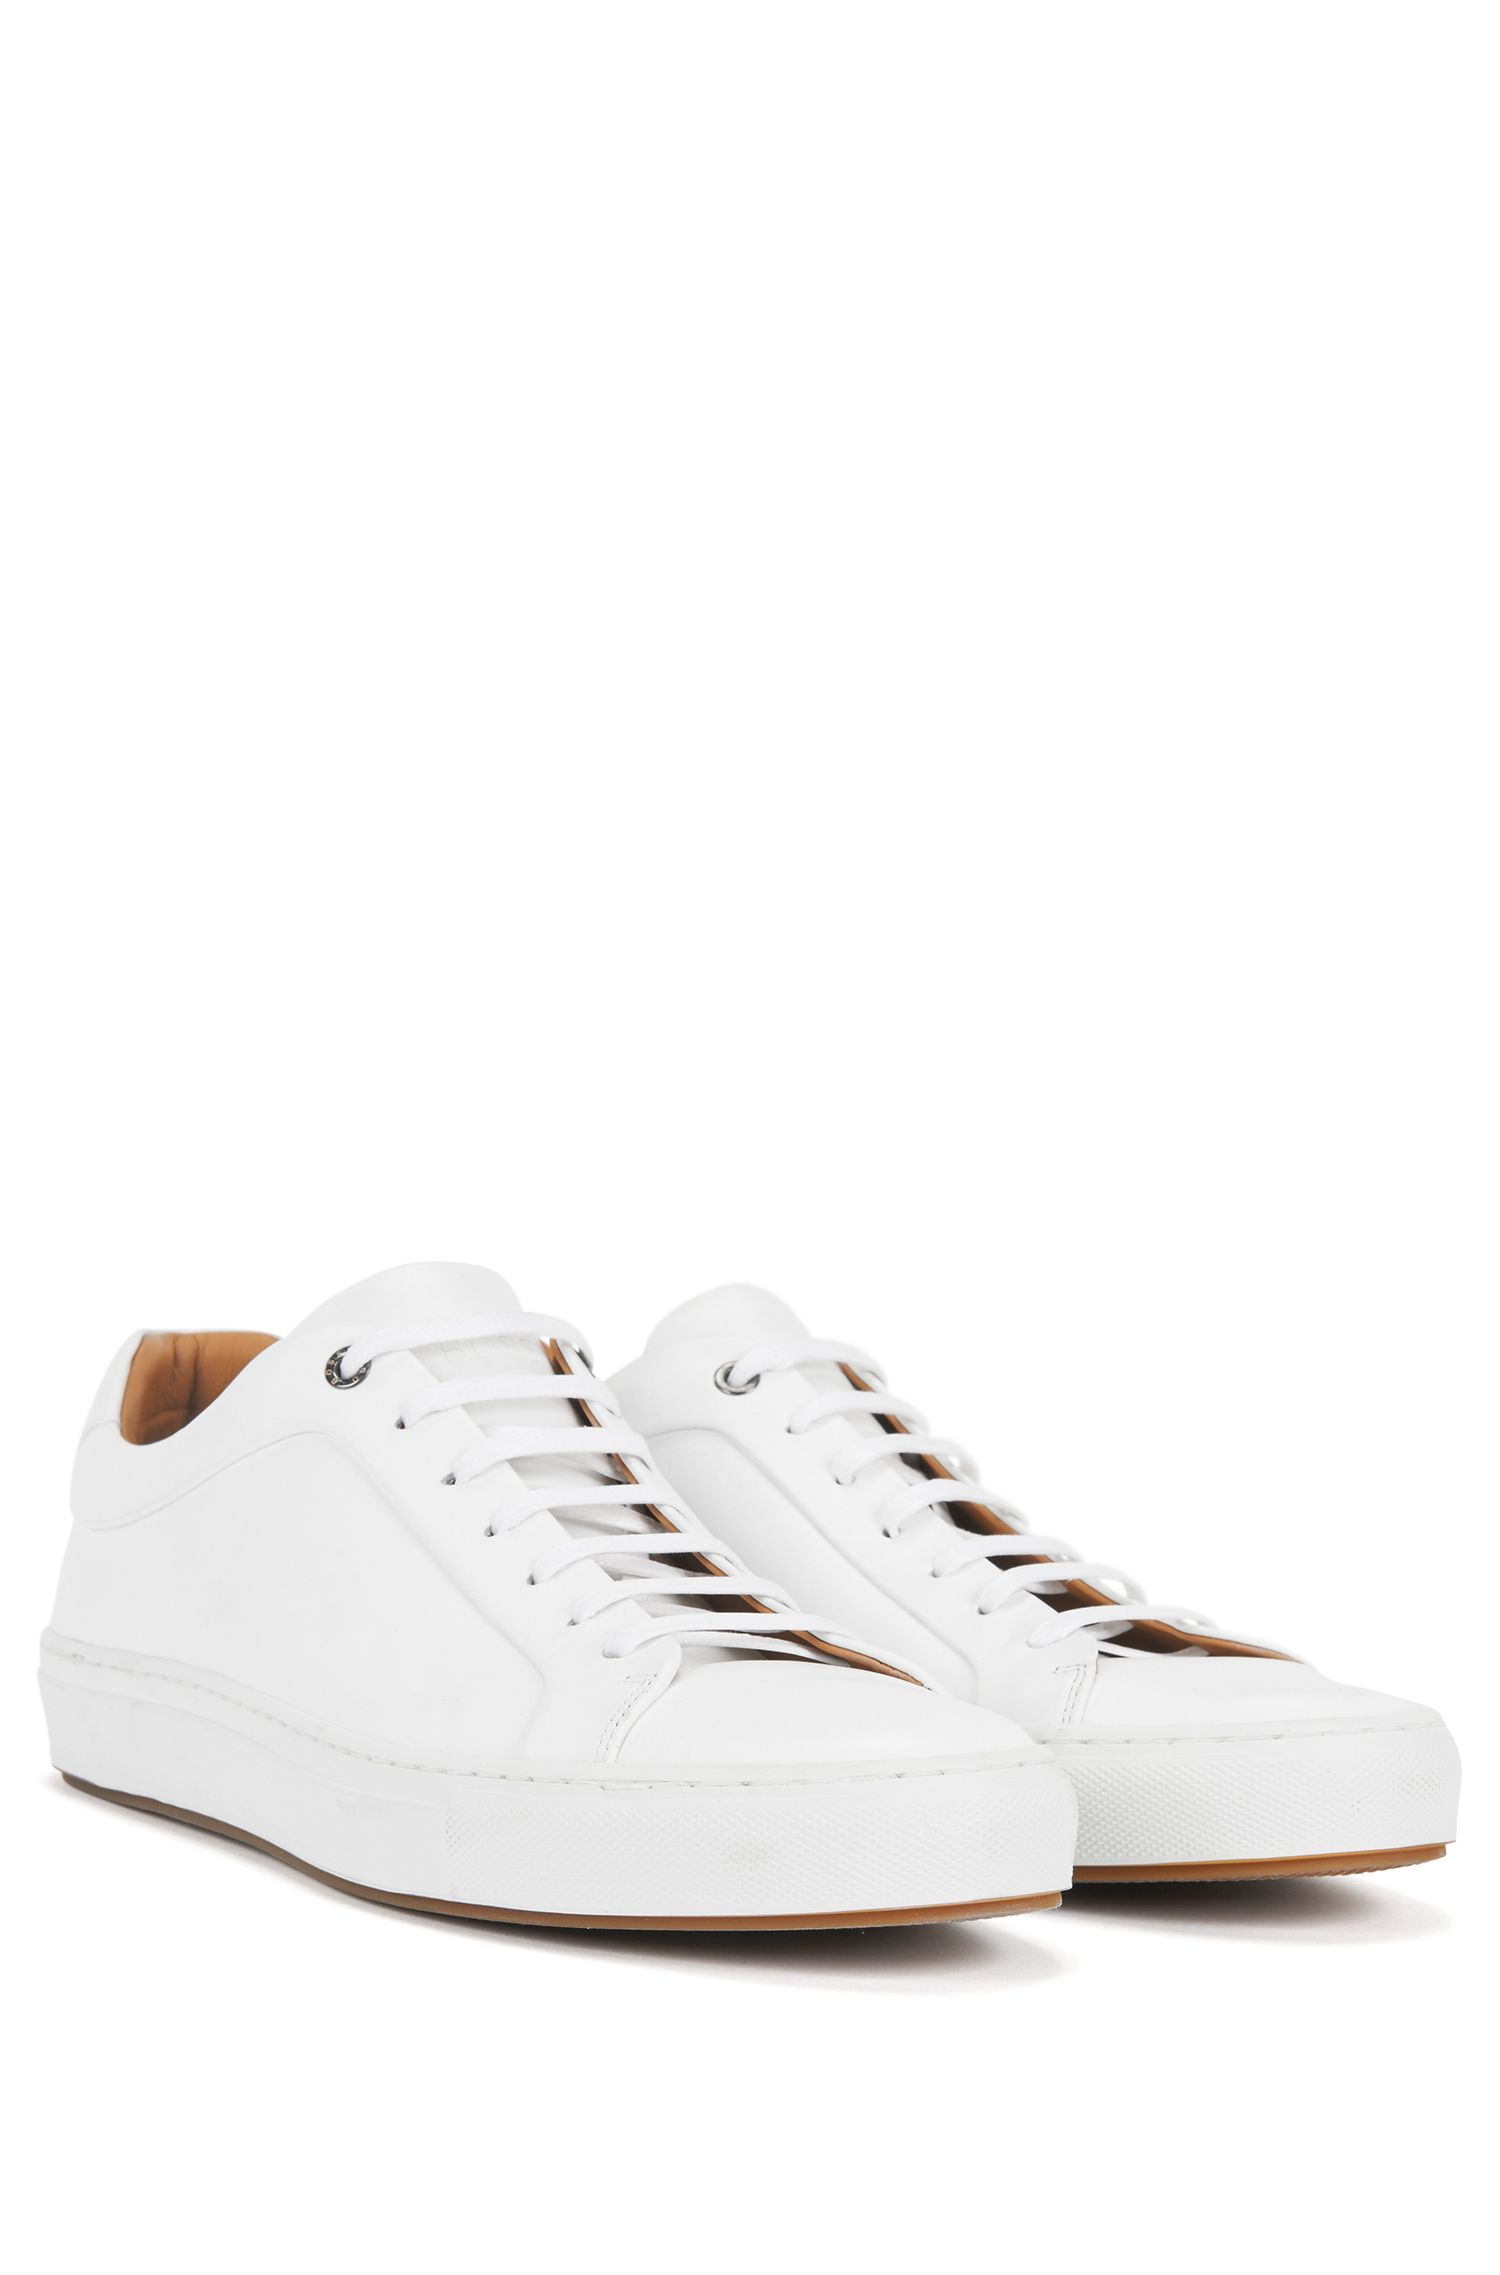 Sneakers in stile tennis in pelle brunita